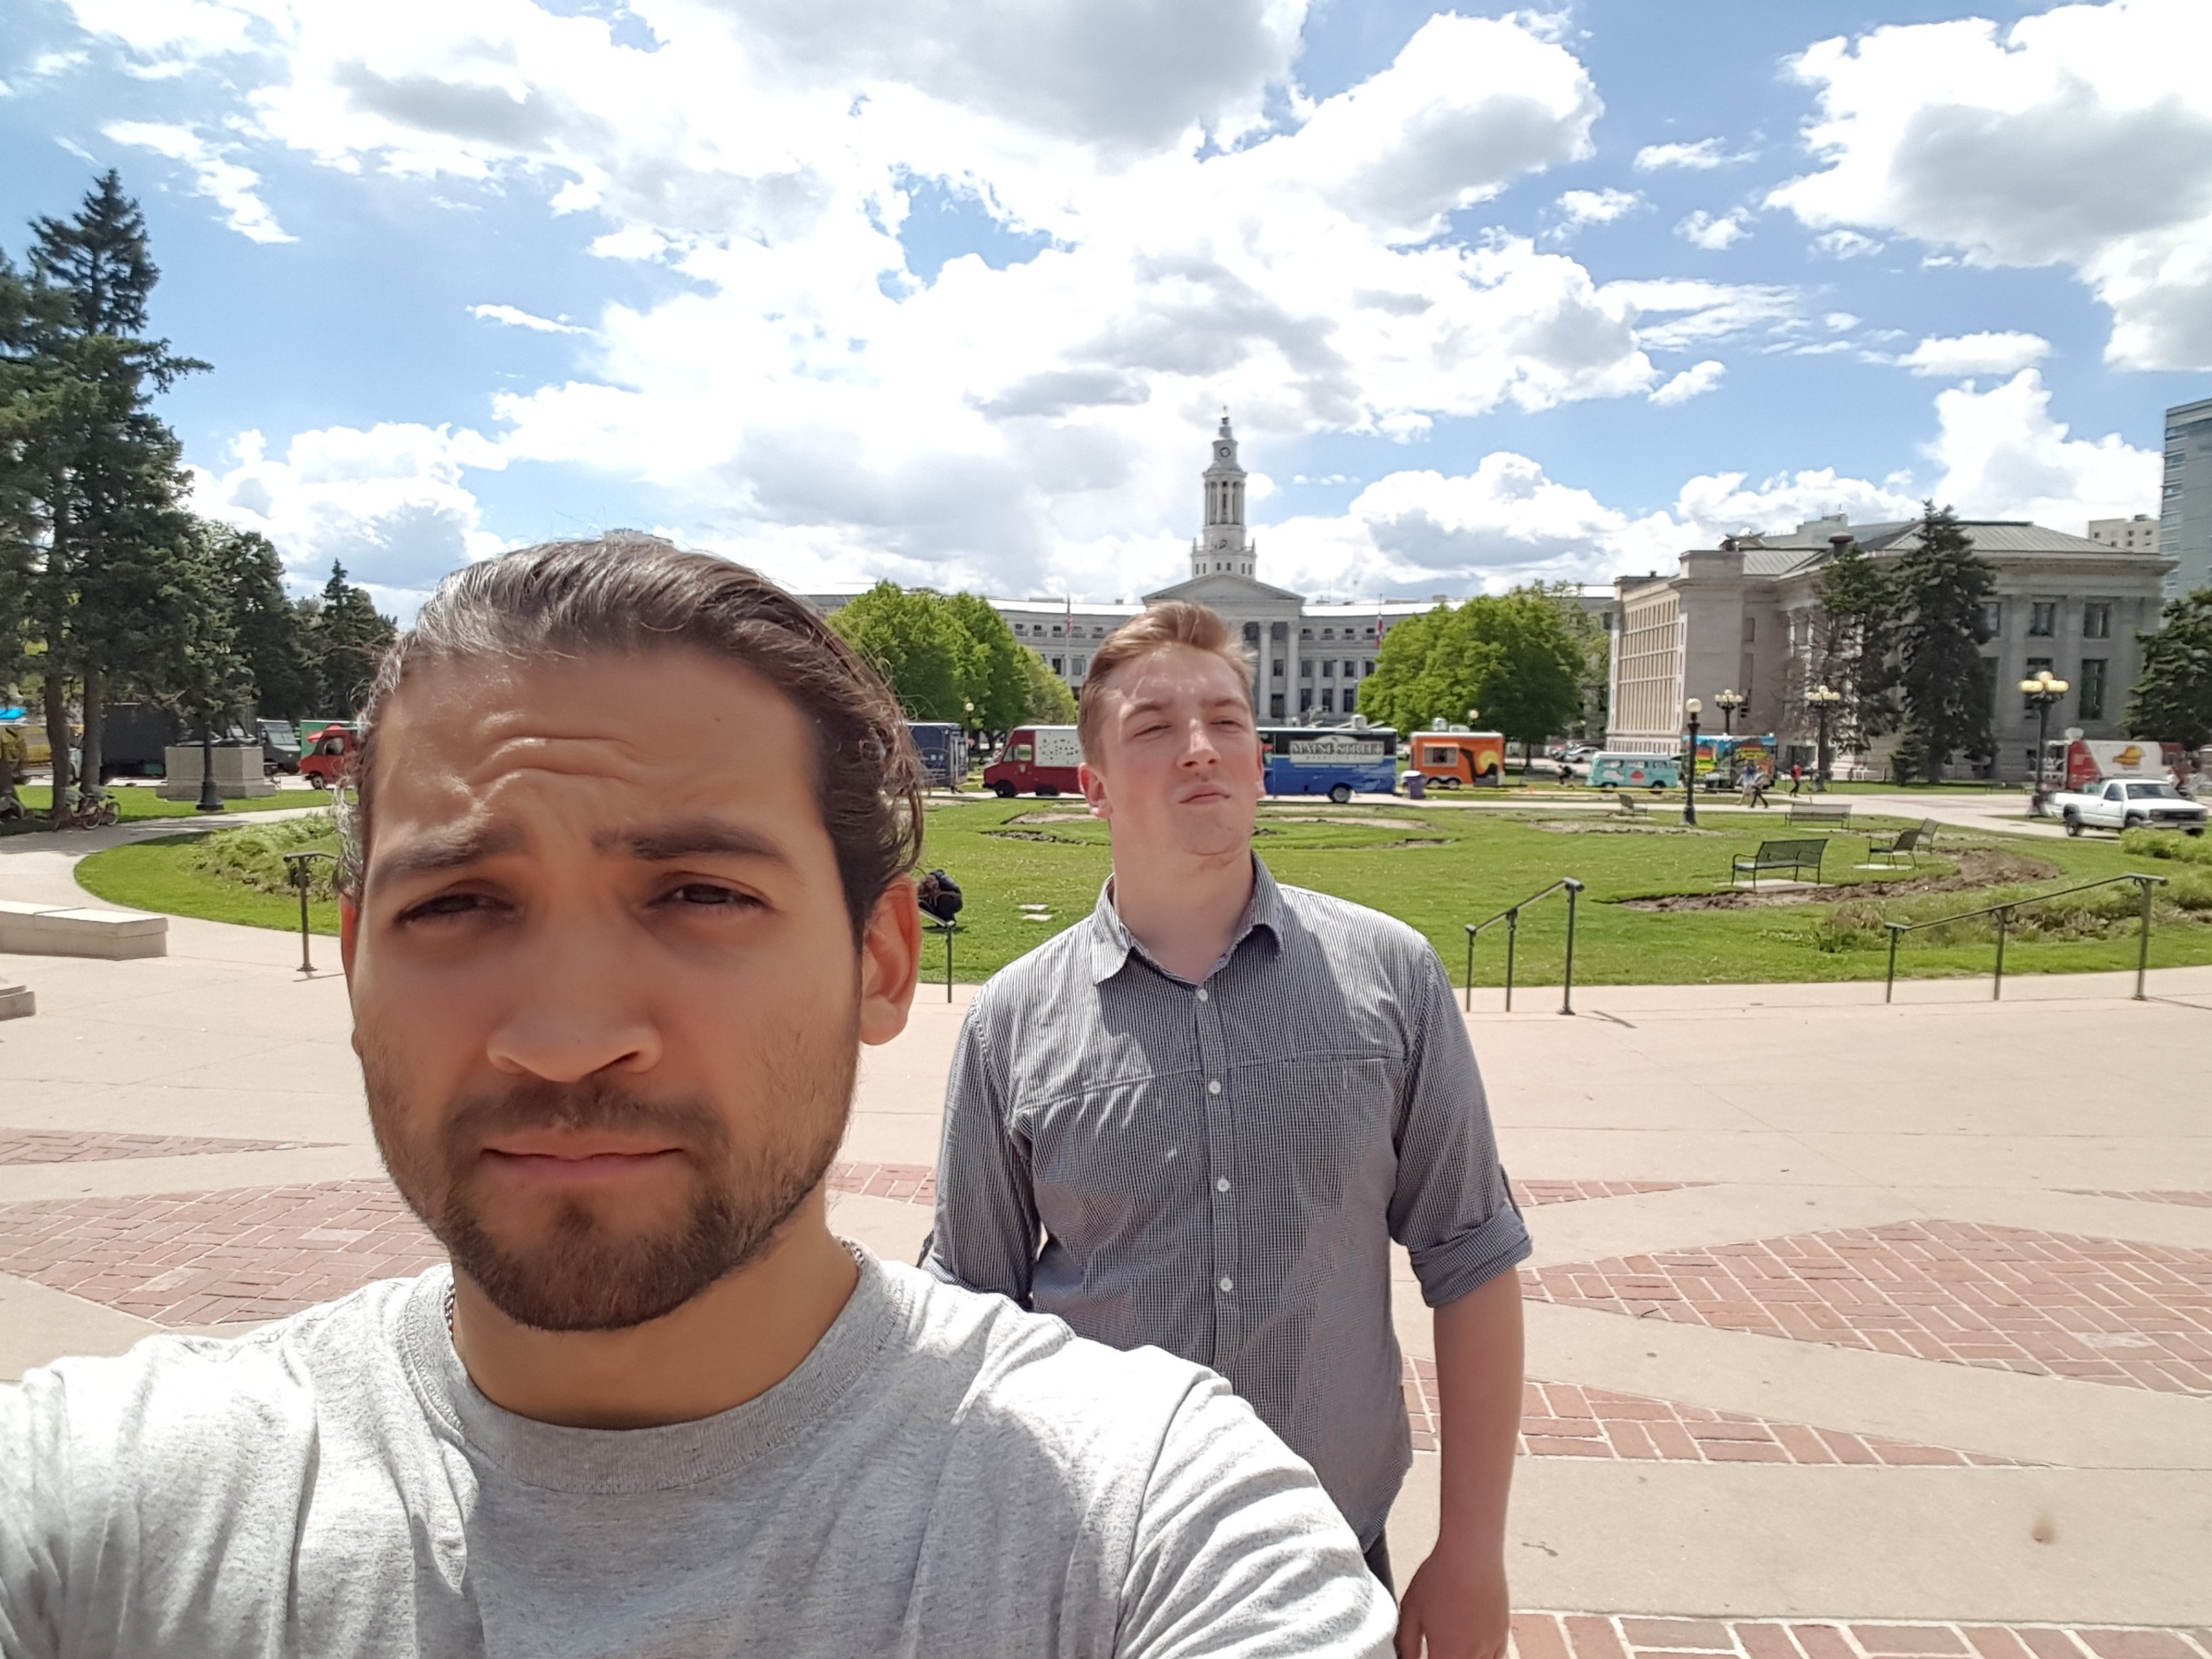 Hanging around the state capital in Denver.